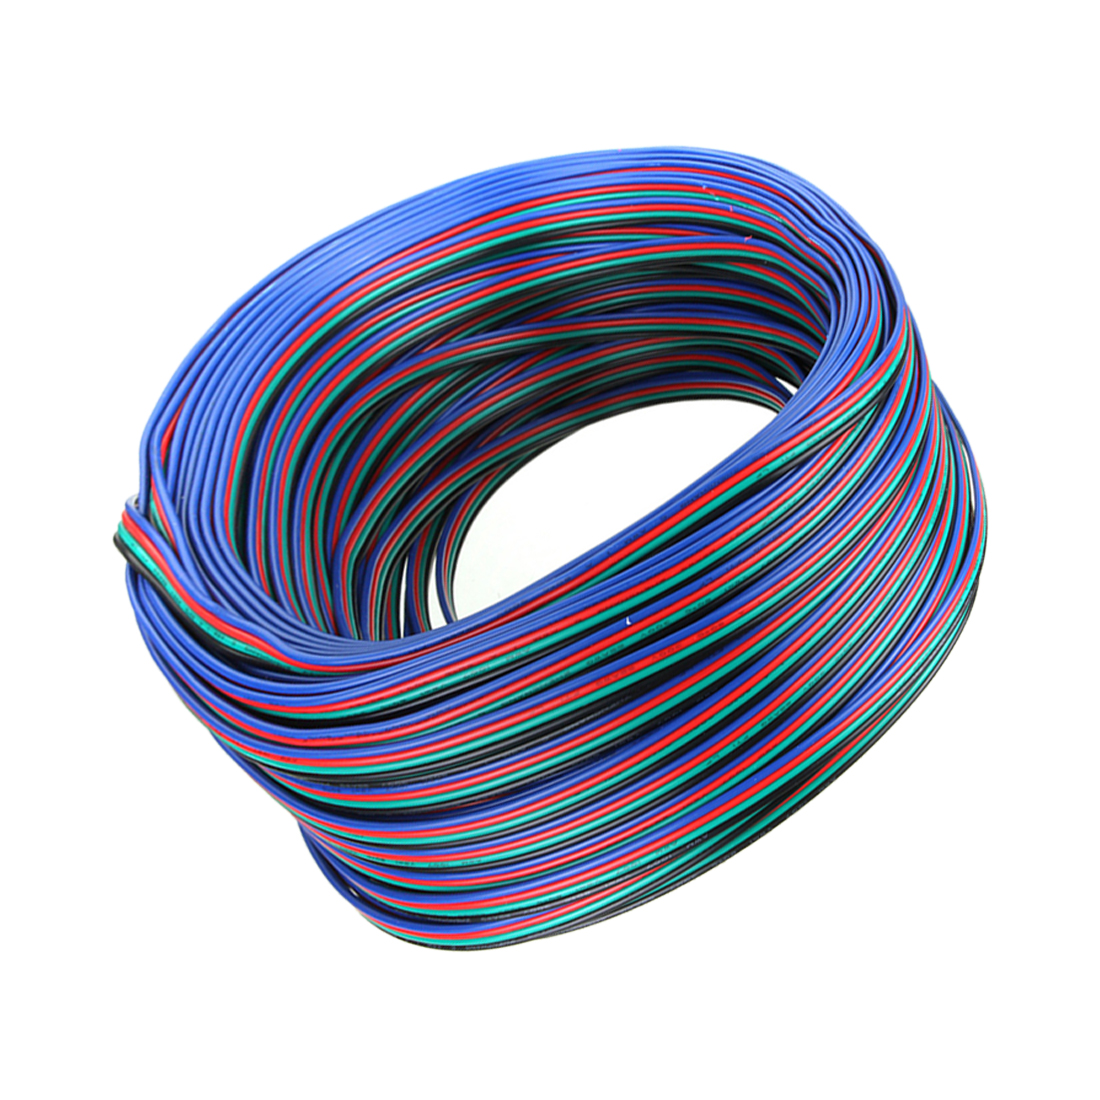 10m 20m 30m 50m 100m 4 Pin Channels LED RGB cable for 5050 3528 LED RGBW Strip Extension Extend Wire Cord Connector